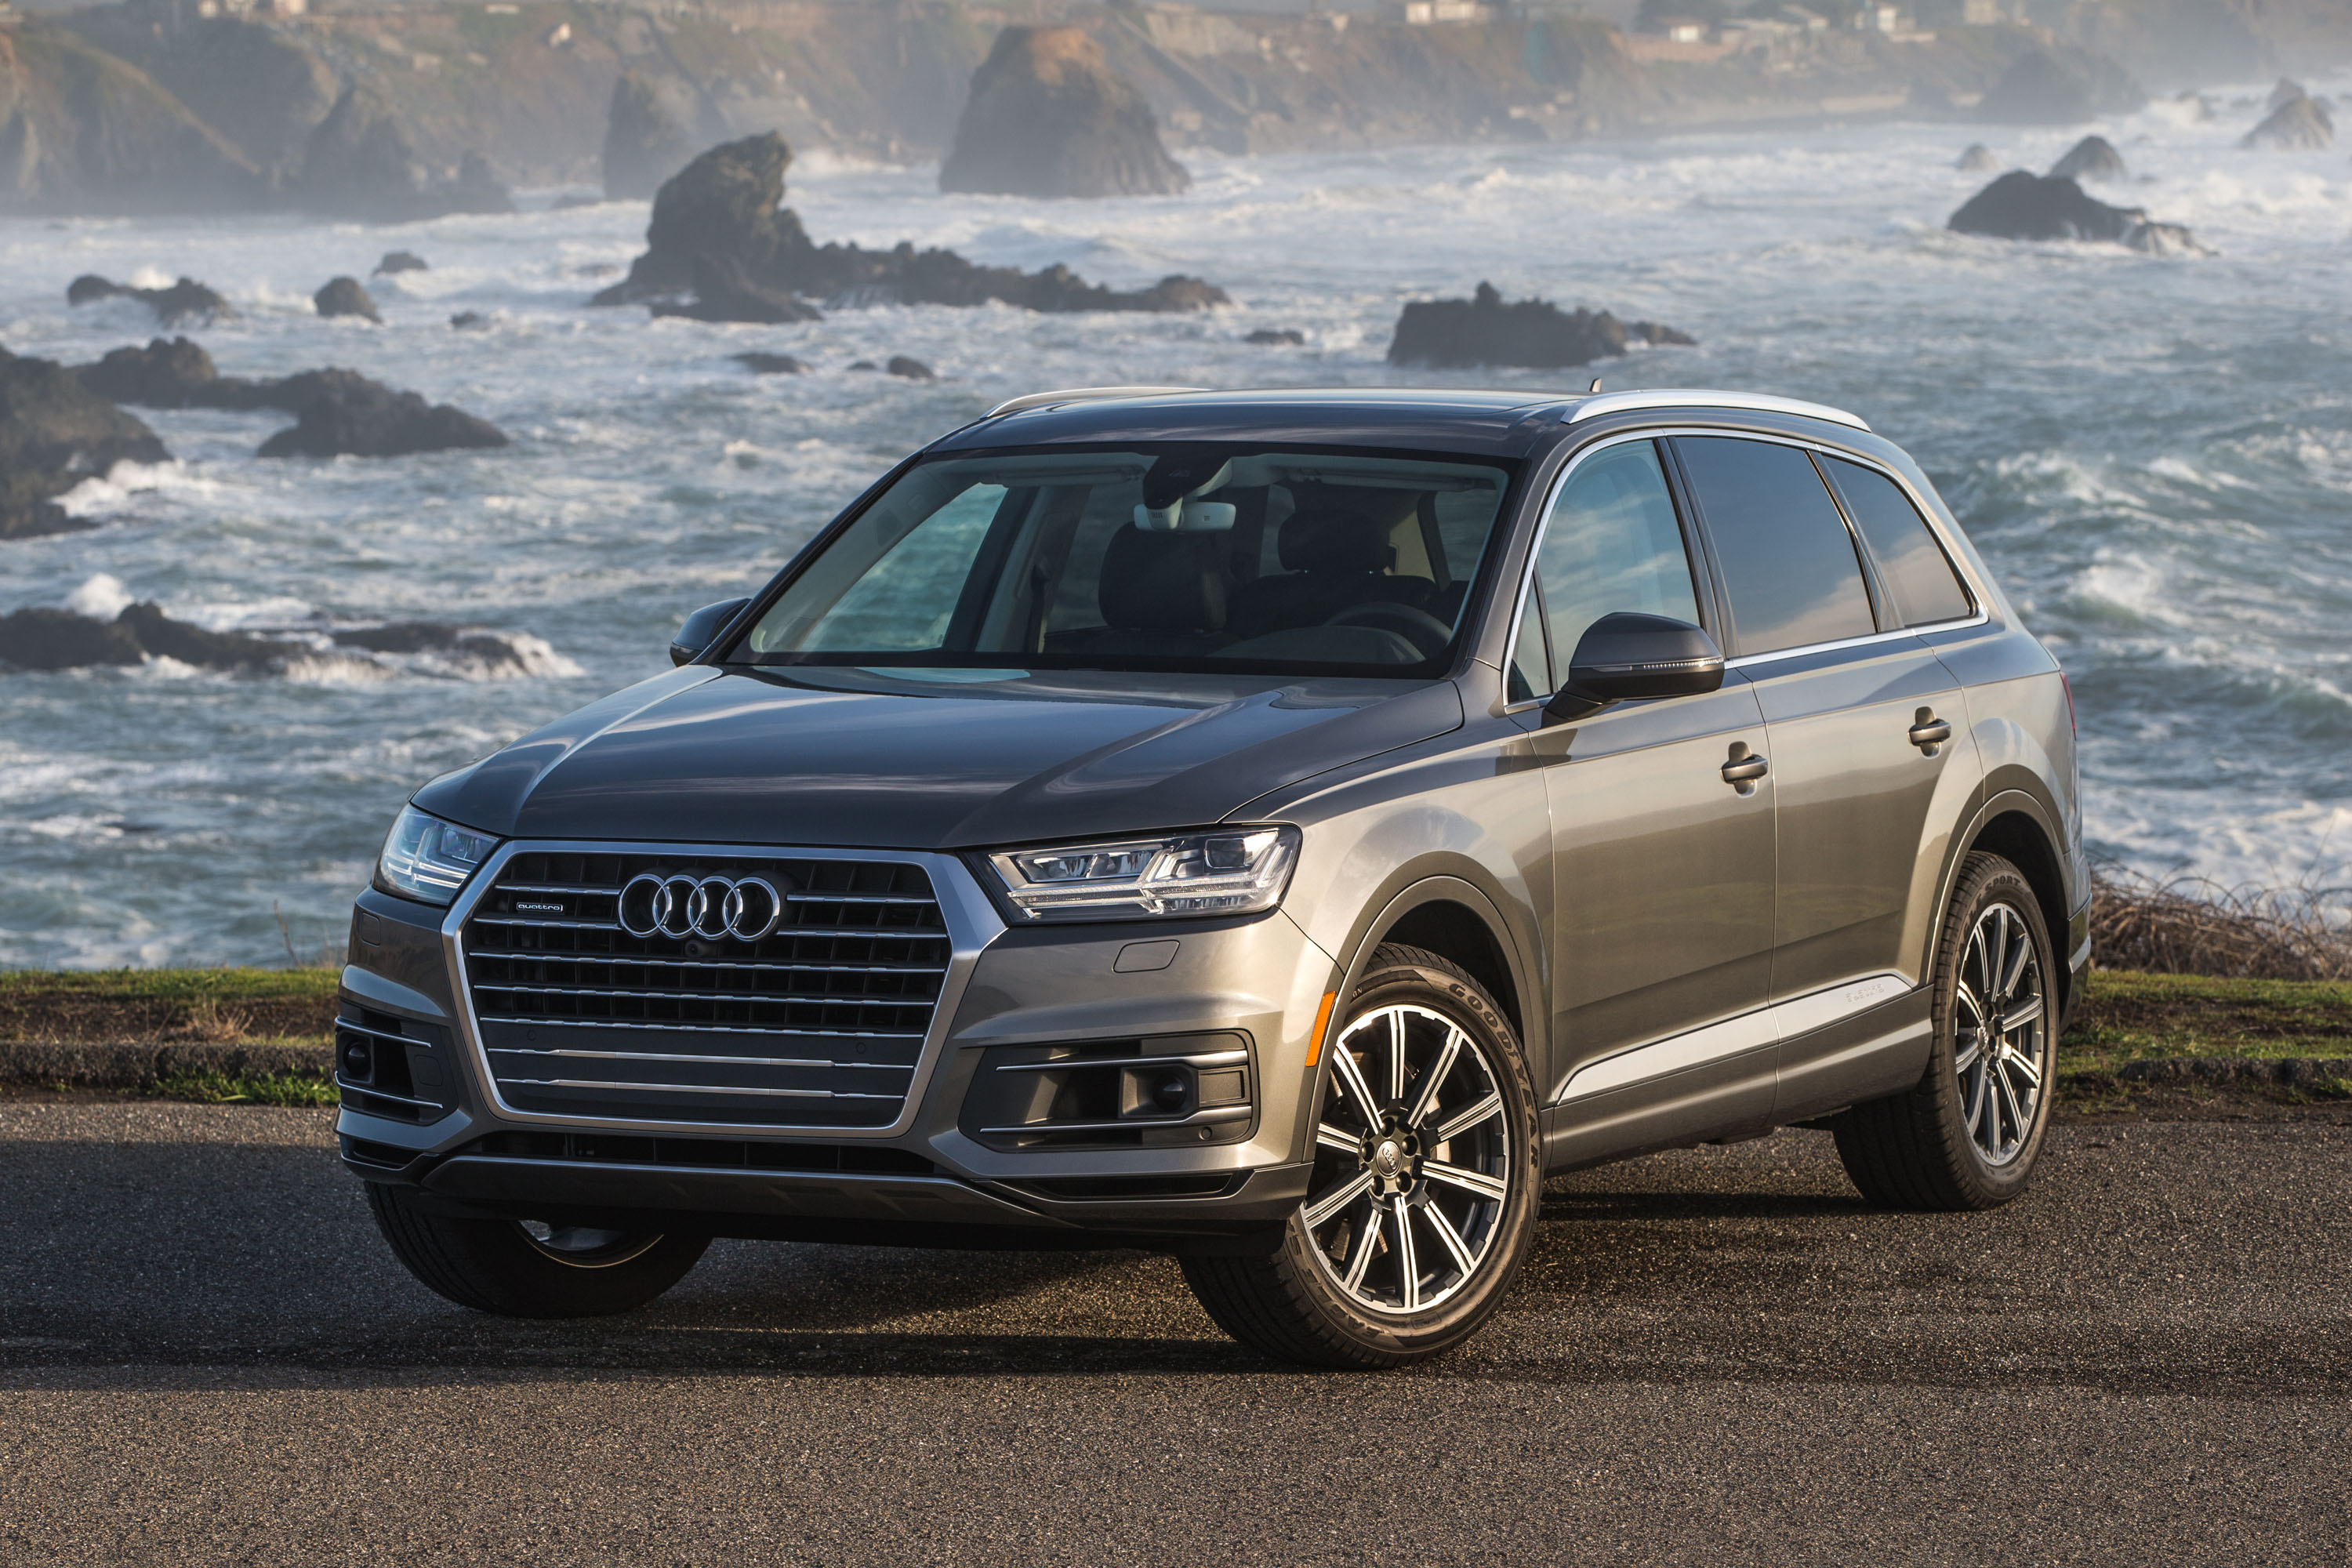 Toyota Kansas City >> 2018 Audi Q7 Premium Plus First Drive Review